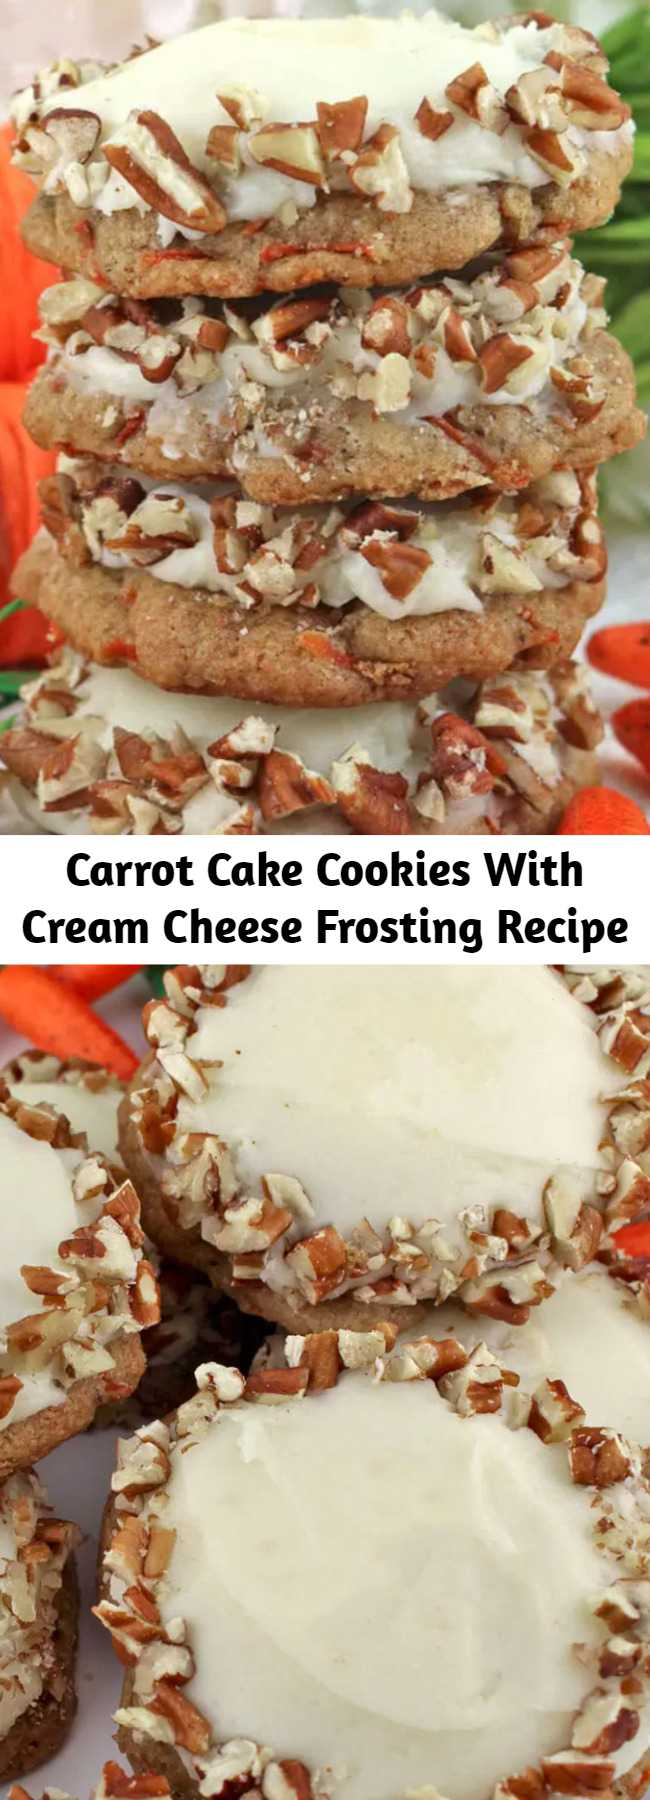 Carrot Cake Cookies With Cream Cheese Frosting Recipe - Our Carrot Cake Cookies with Cream Cheese Frosting feature a light, and fluffy cookie chocked full of carrots and cinnamon and topped with delicious cream cheese frosting.